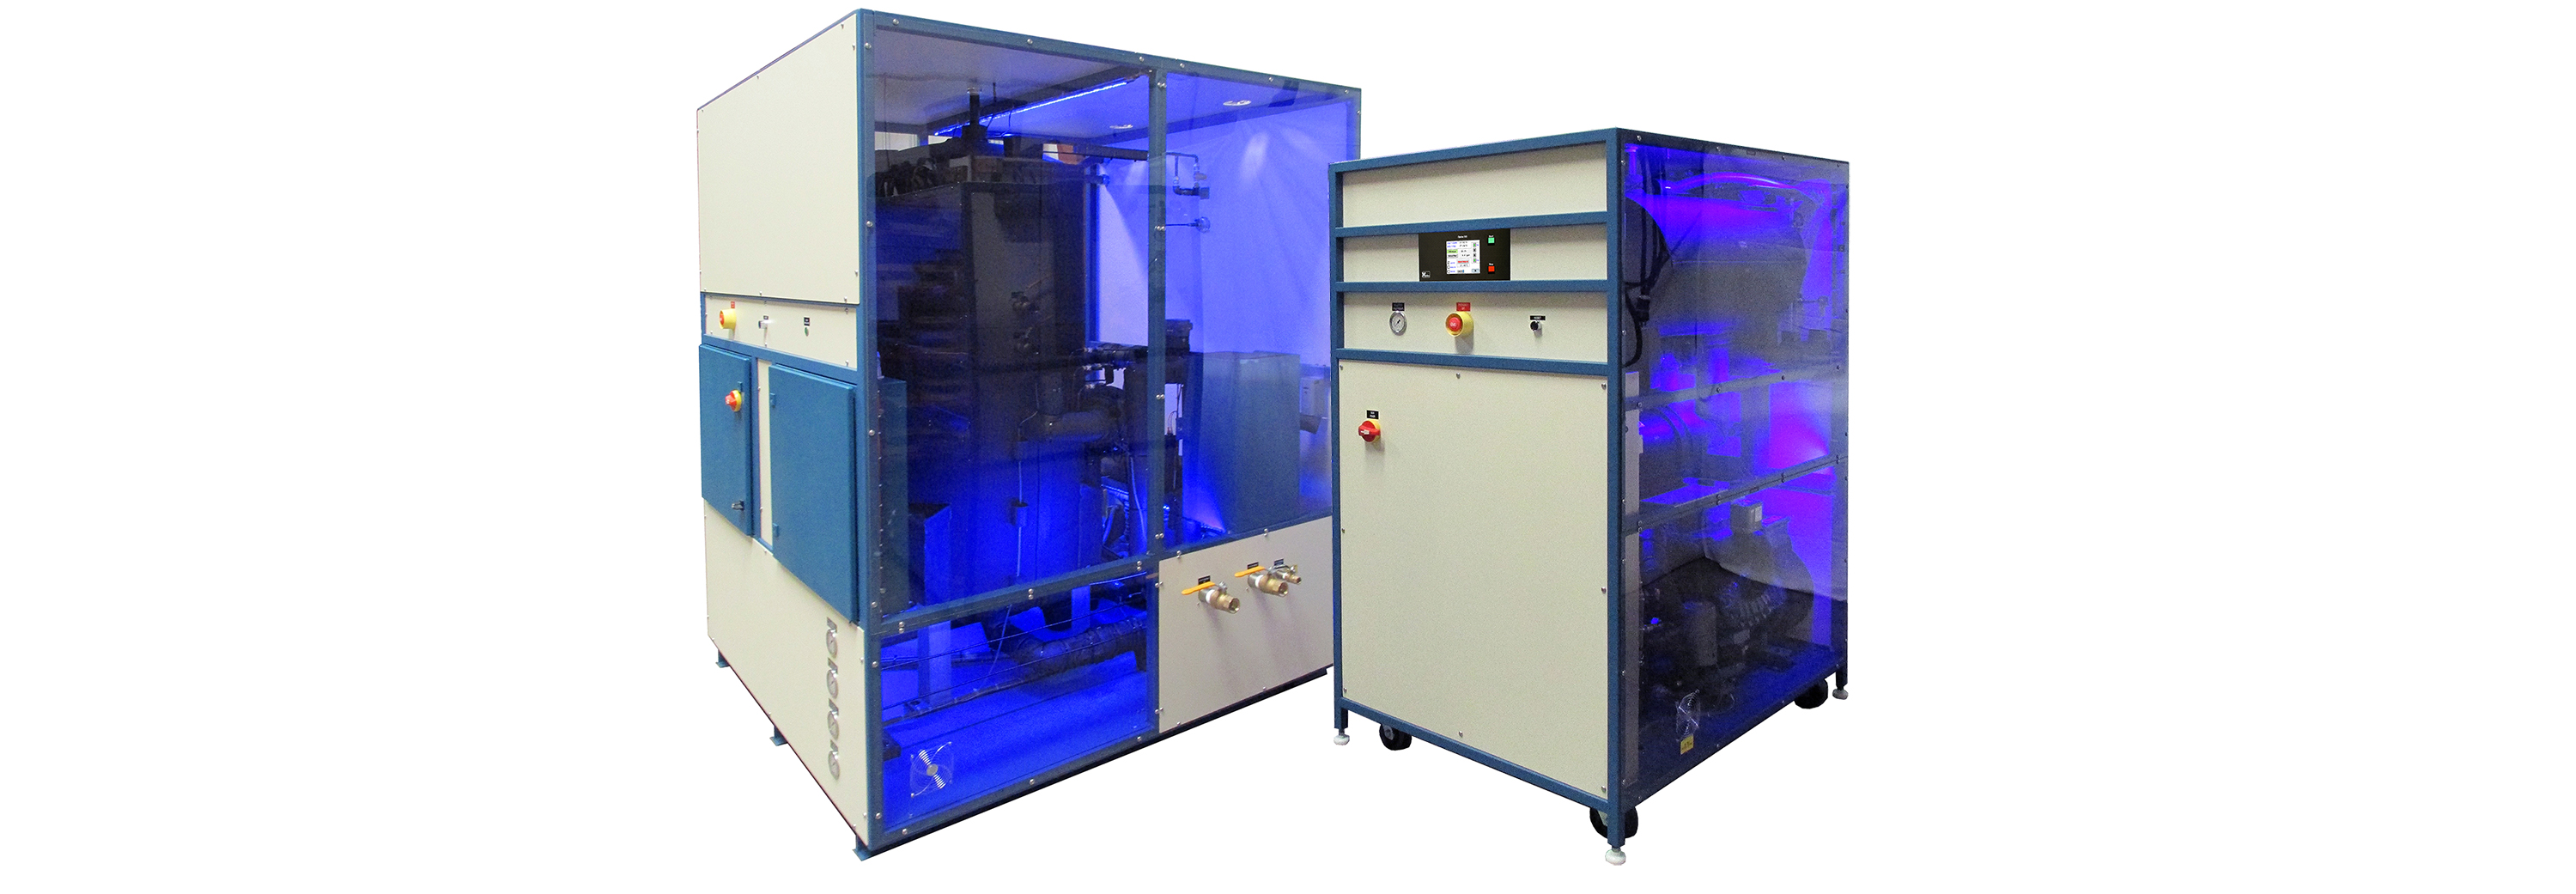 request about us mydax chiller system image gallery mydax chiller  #440CBF